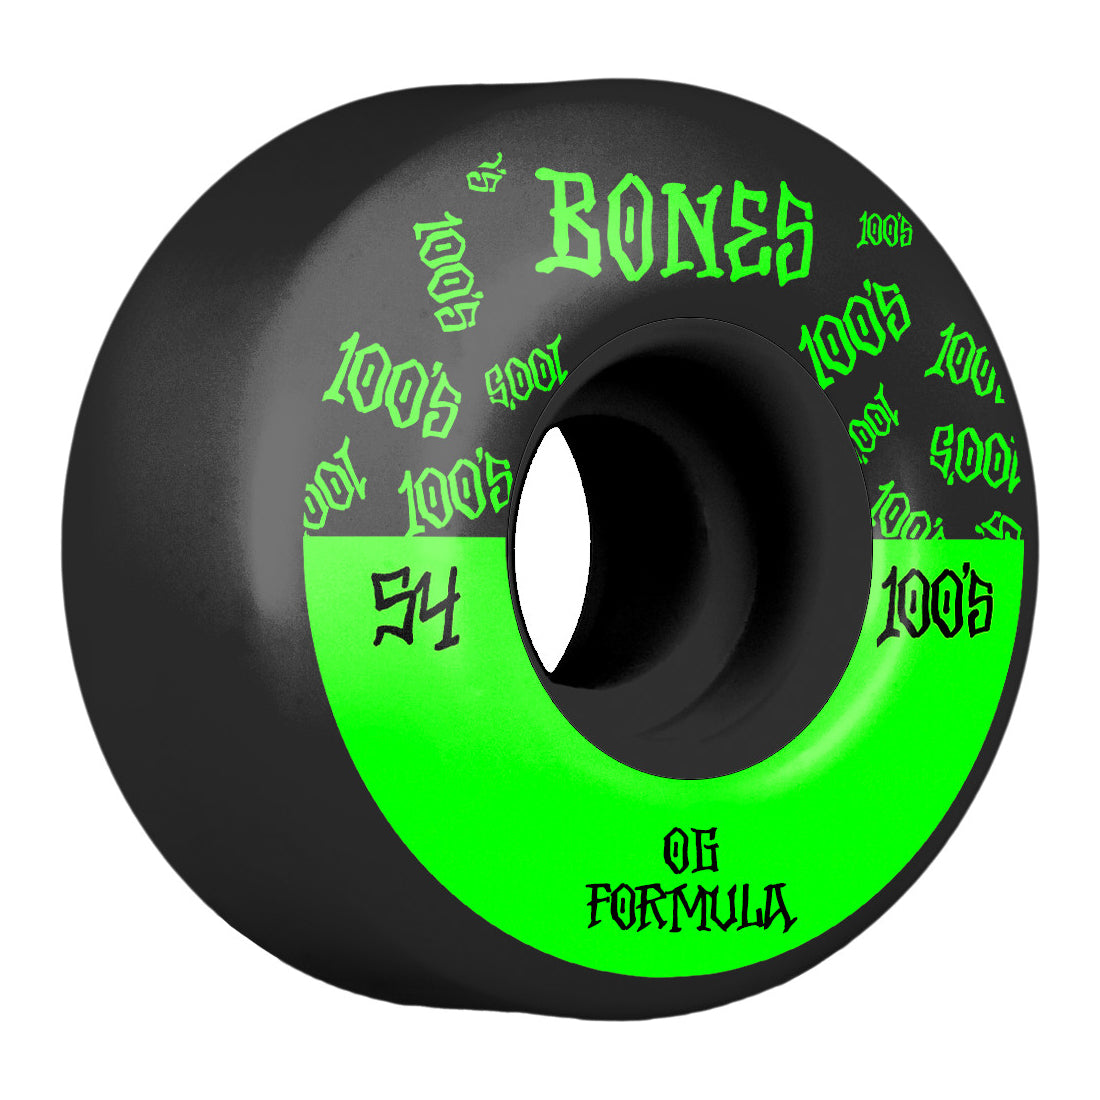 Bones Wheels 100's #13 V4 Wide Black 54mm